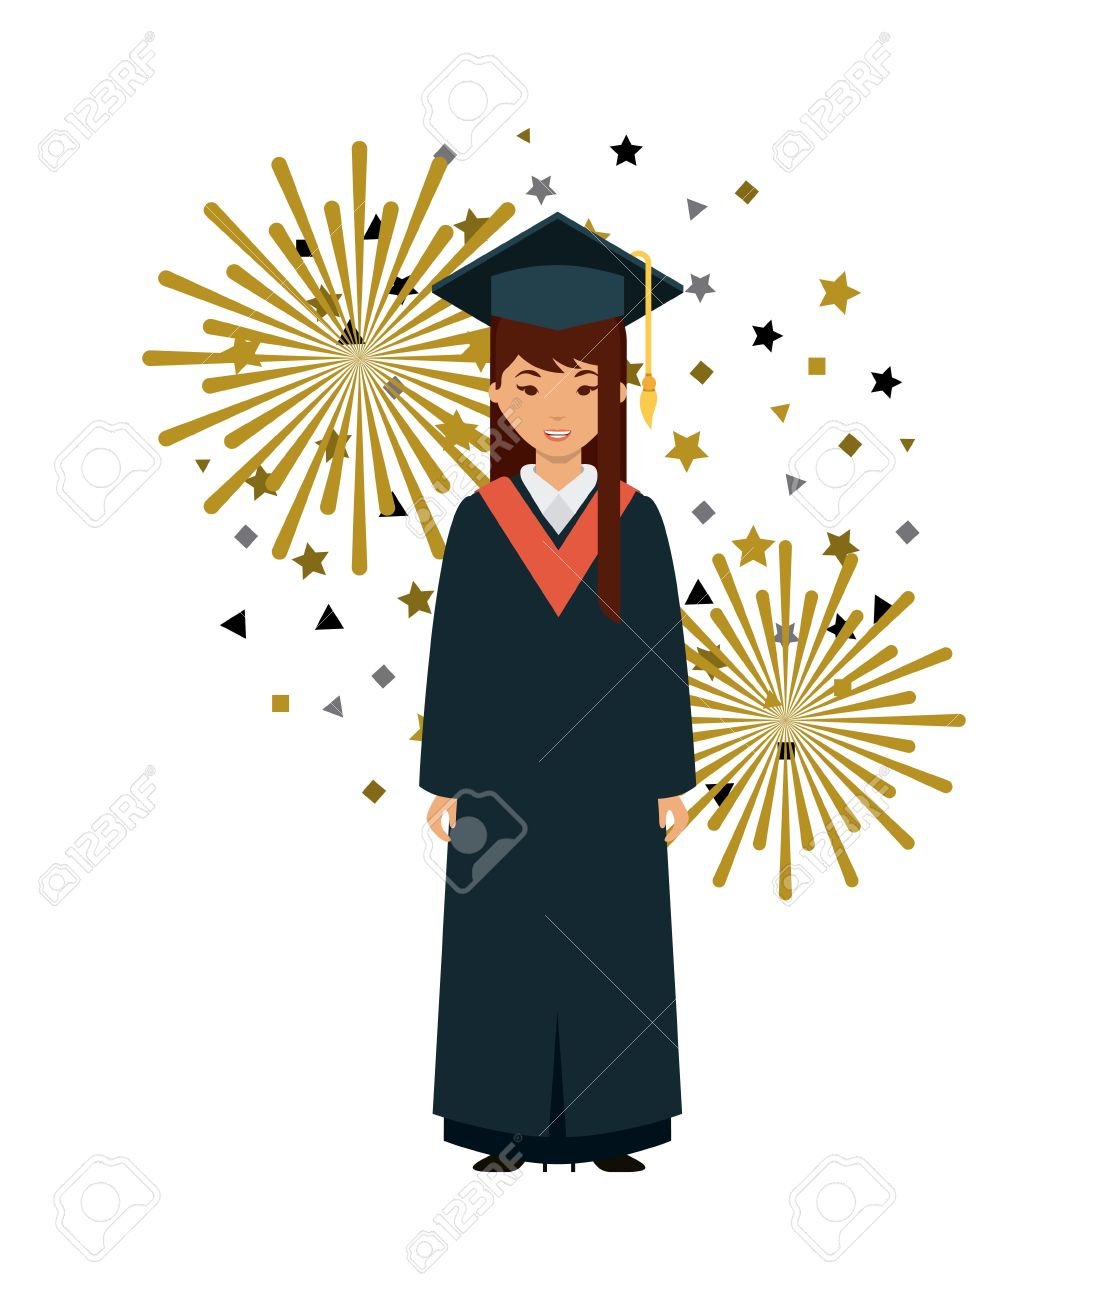 Cartoon Graduate Woman With Graduation Gown And Hat Icon Over White ...